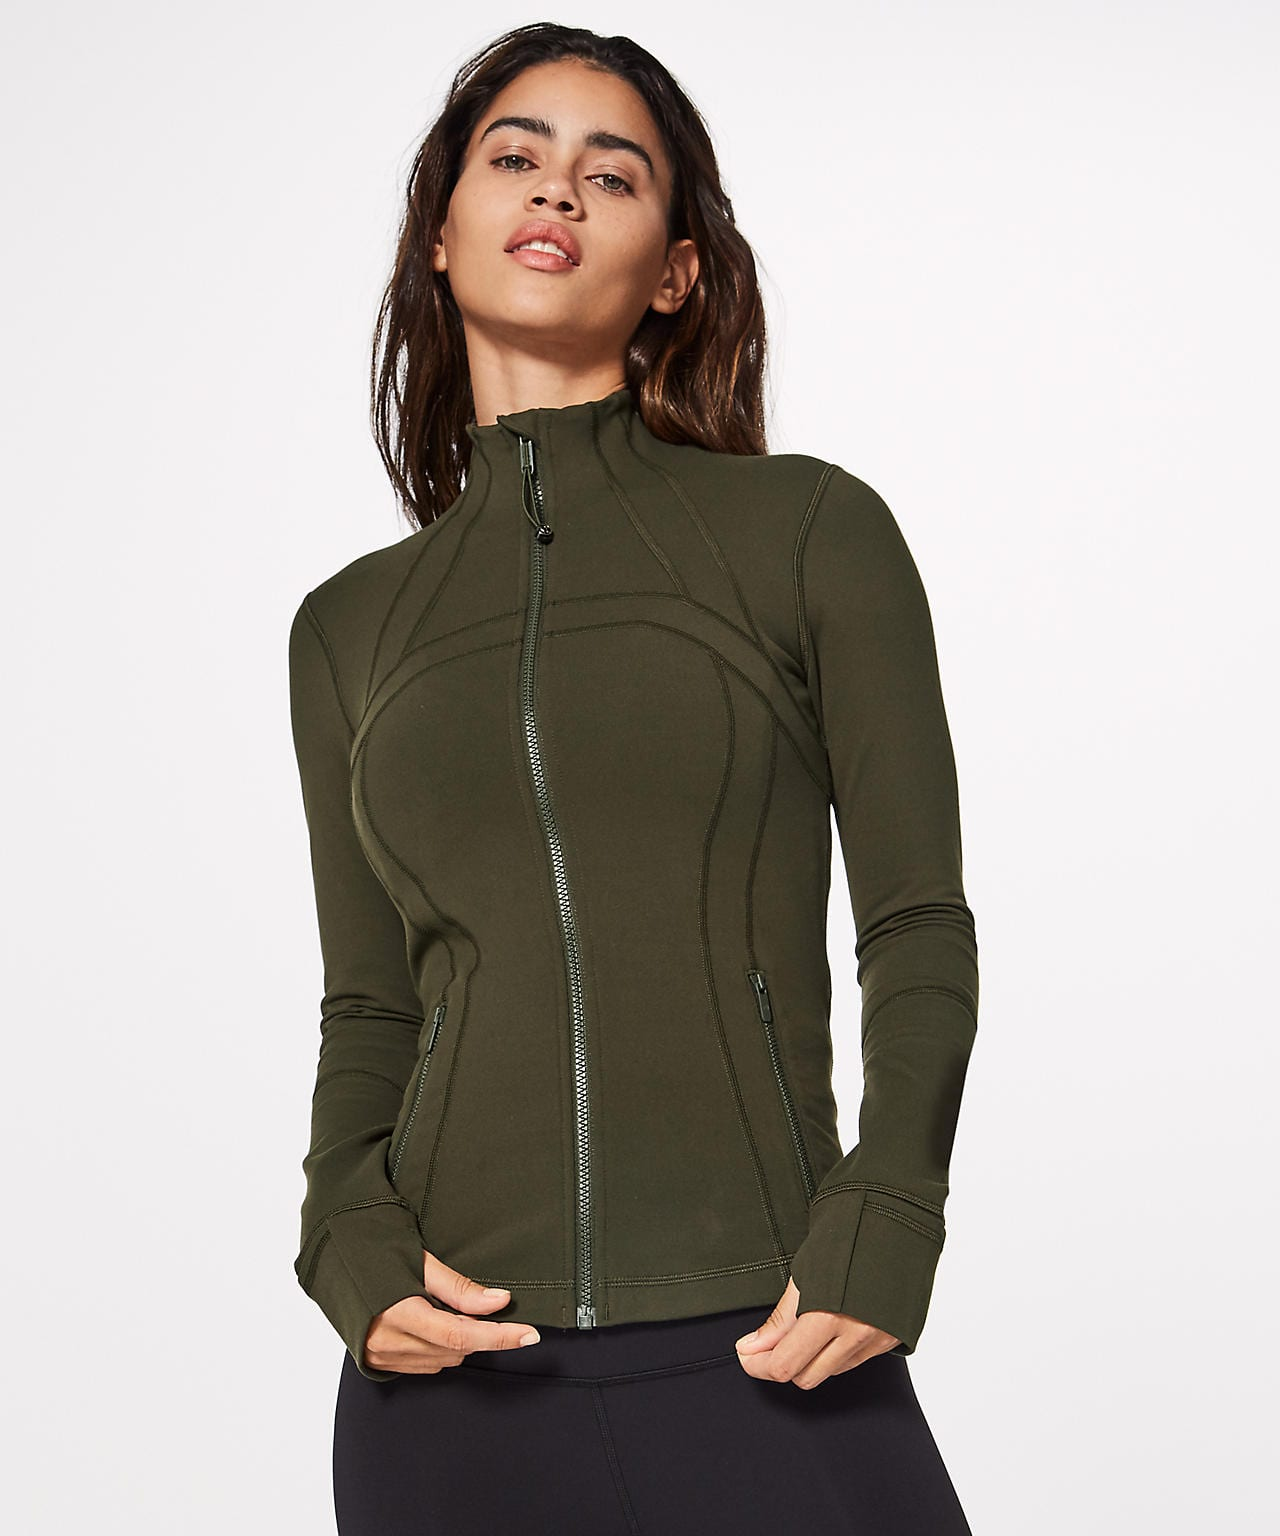 Define Jacket, Dark Olive, Lululemon Upload